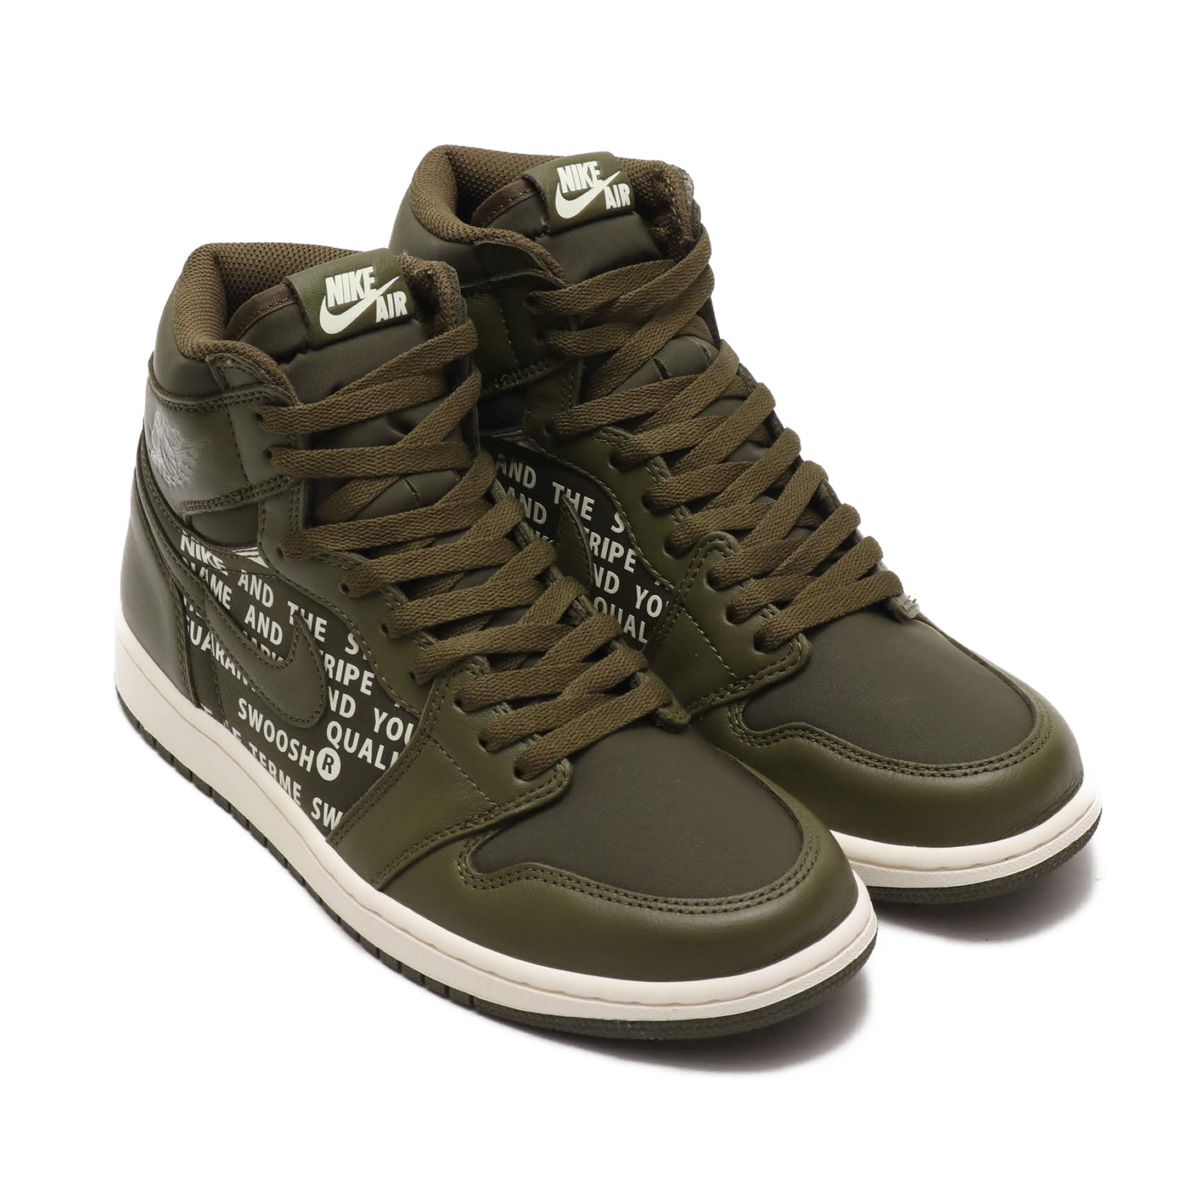 8c72bece10e83e NIKE AIR JORDAN 1 RETRO HIGH OG (Nike Air Jordan 1 nostalgic high OG) (OLIVE  CANVAS SAIL)